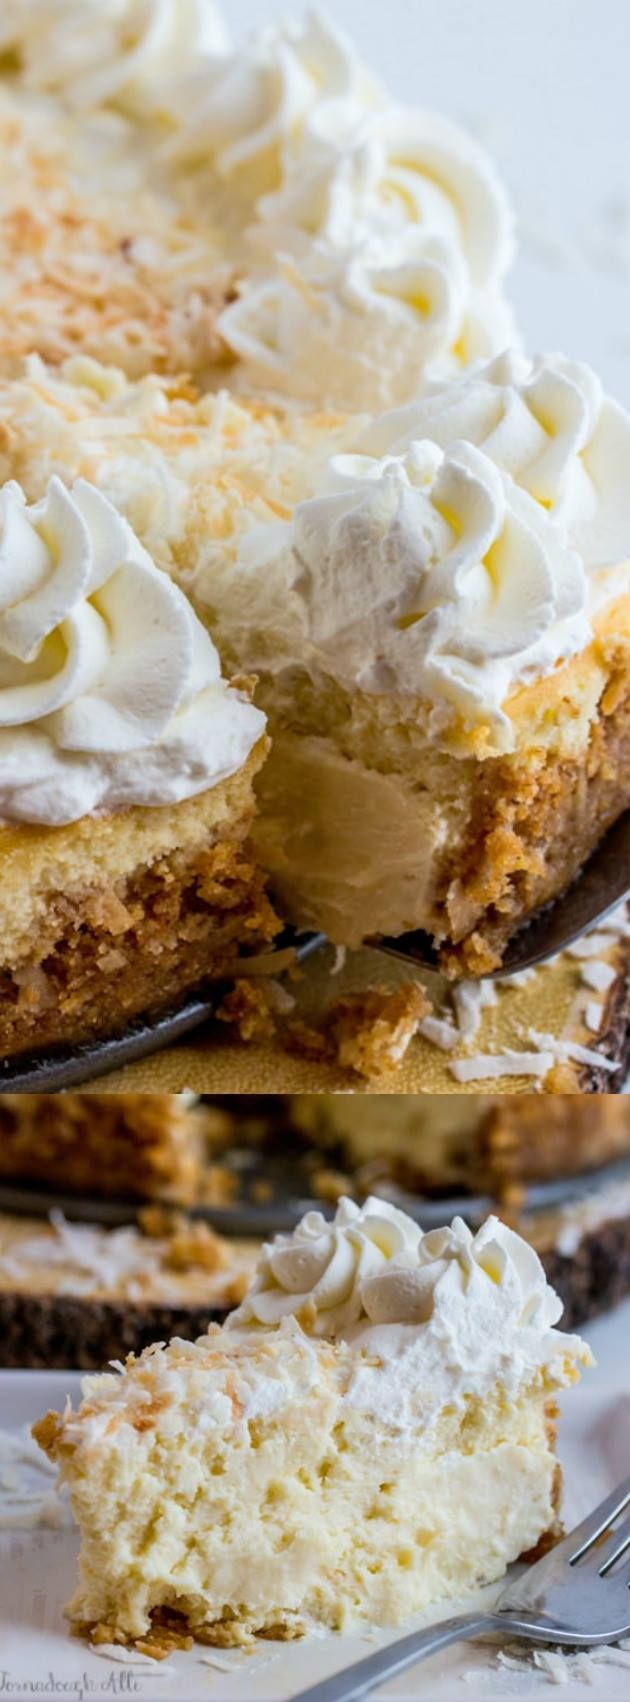 This Coconut Cream Cheesecake from Tornadough Alli is creamy, rich, and delicious. It takes the traditional coconut pie and gives it a super fun twist!